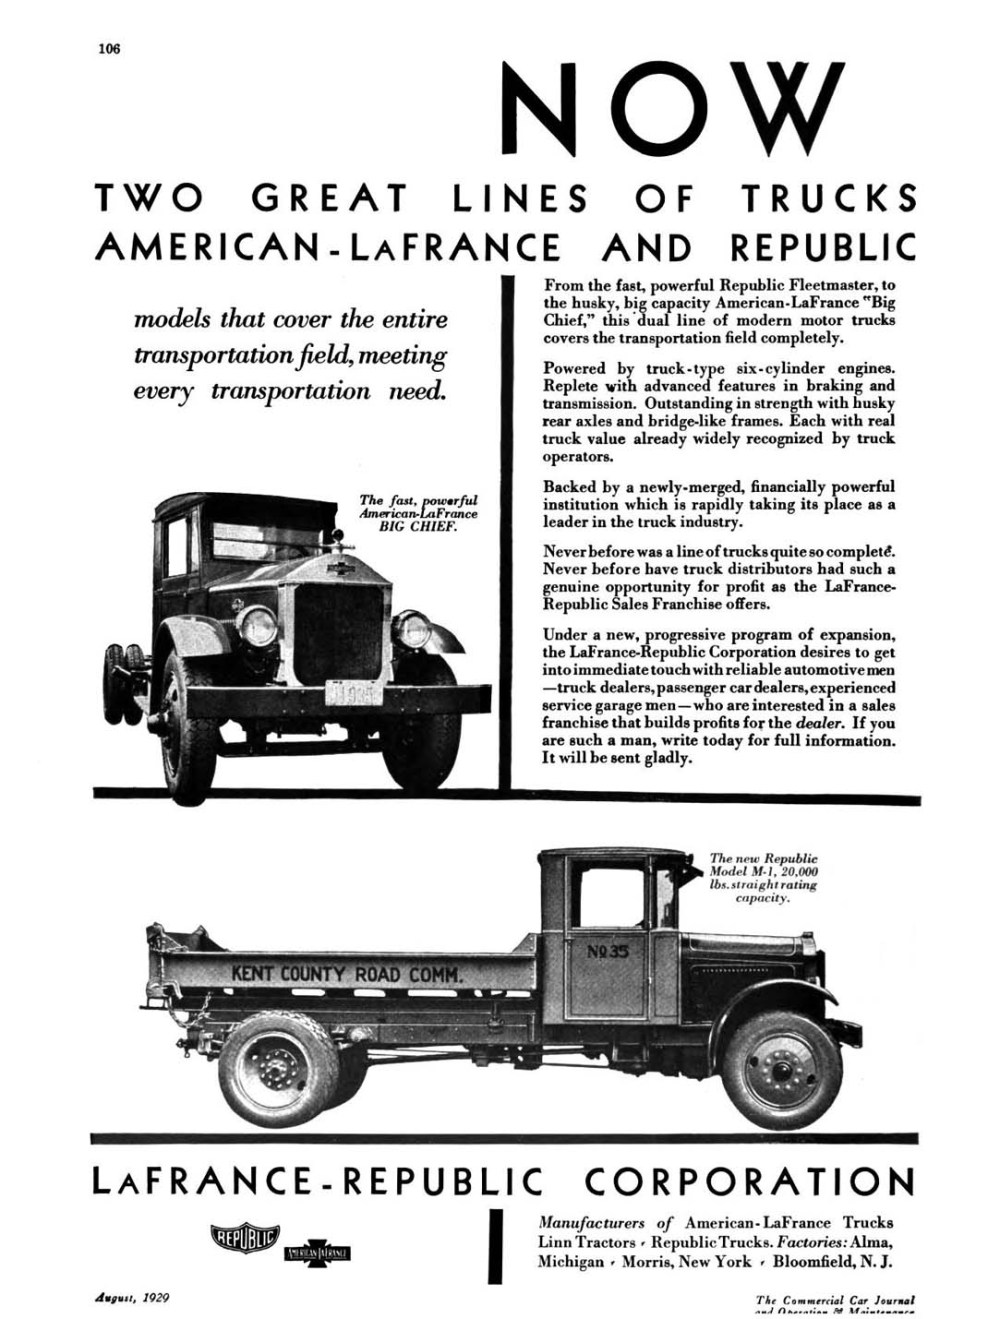 medium resolution of the range included 12 models from small republic fleetmaster to large american lafrance big chief